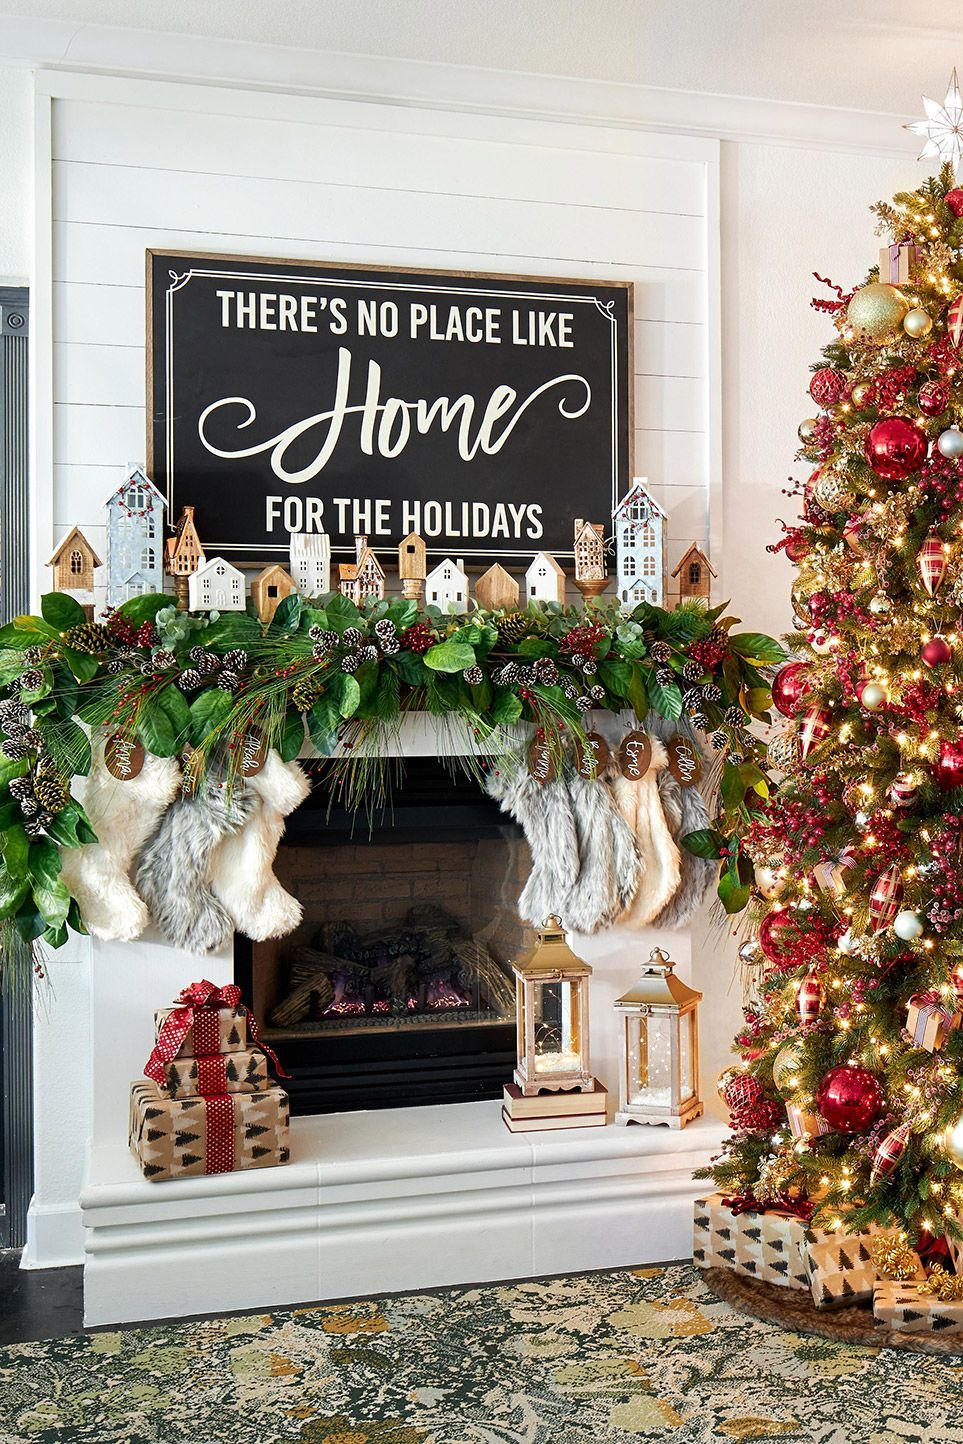 Draw attention to your mantel display with an oversized sign. To complete the look, a collection of small houses peek out above a lush Christmas mantel garland with eucalyptus, pinecones, and small berries. #christmasmantel #christmasmantelideas #manteldecorations #garland #holidaydecor #bhg